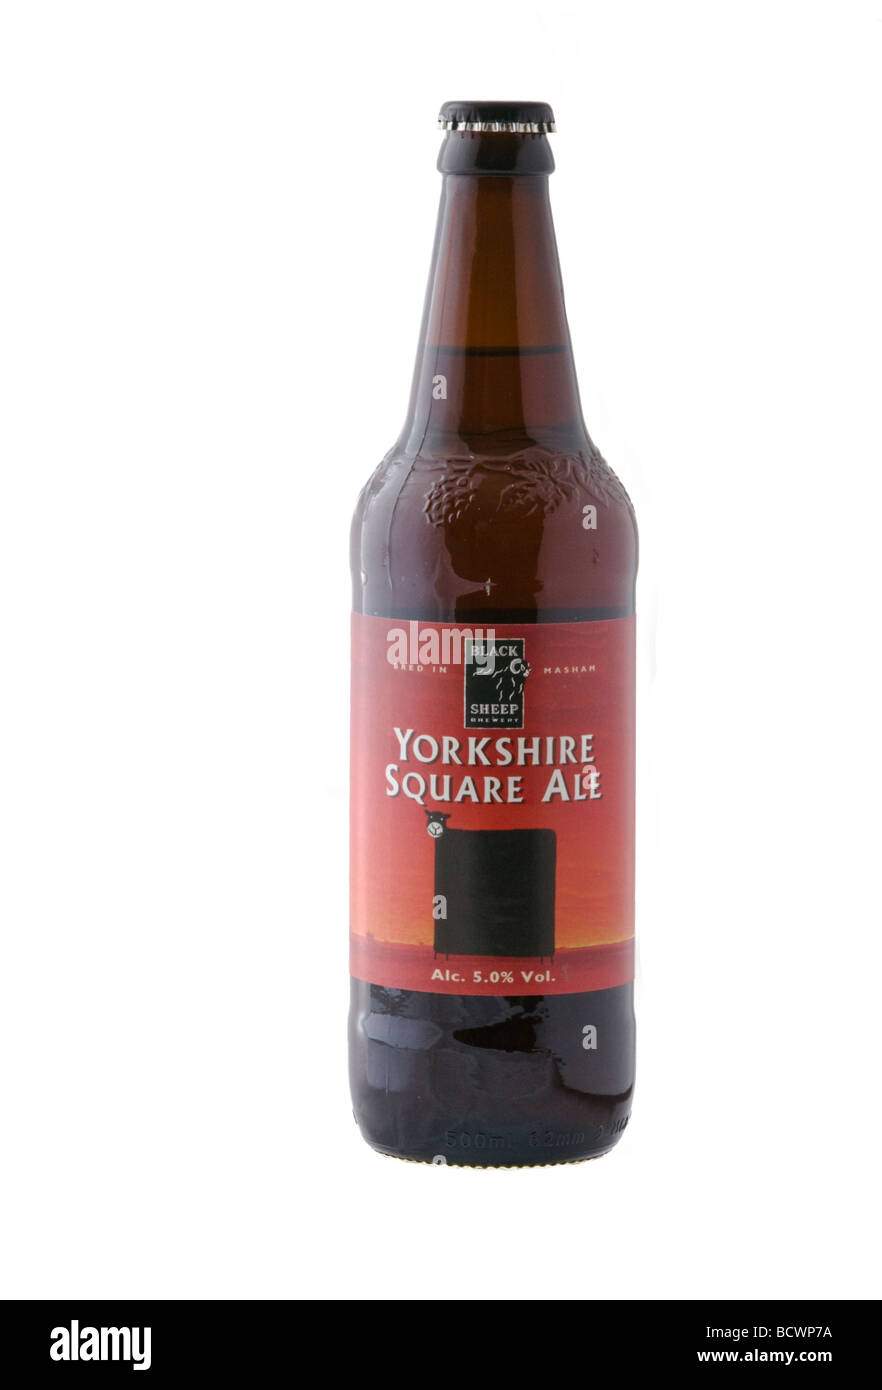 Bottle of Yorkshire Square Ale brewed in Masham, Yorkshire, by the Black Sheep Brewery Plc - Stock Image